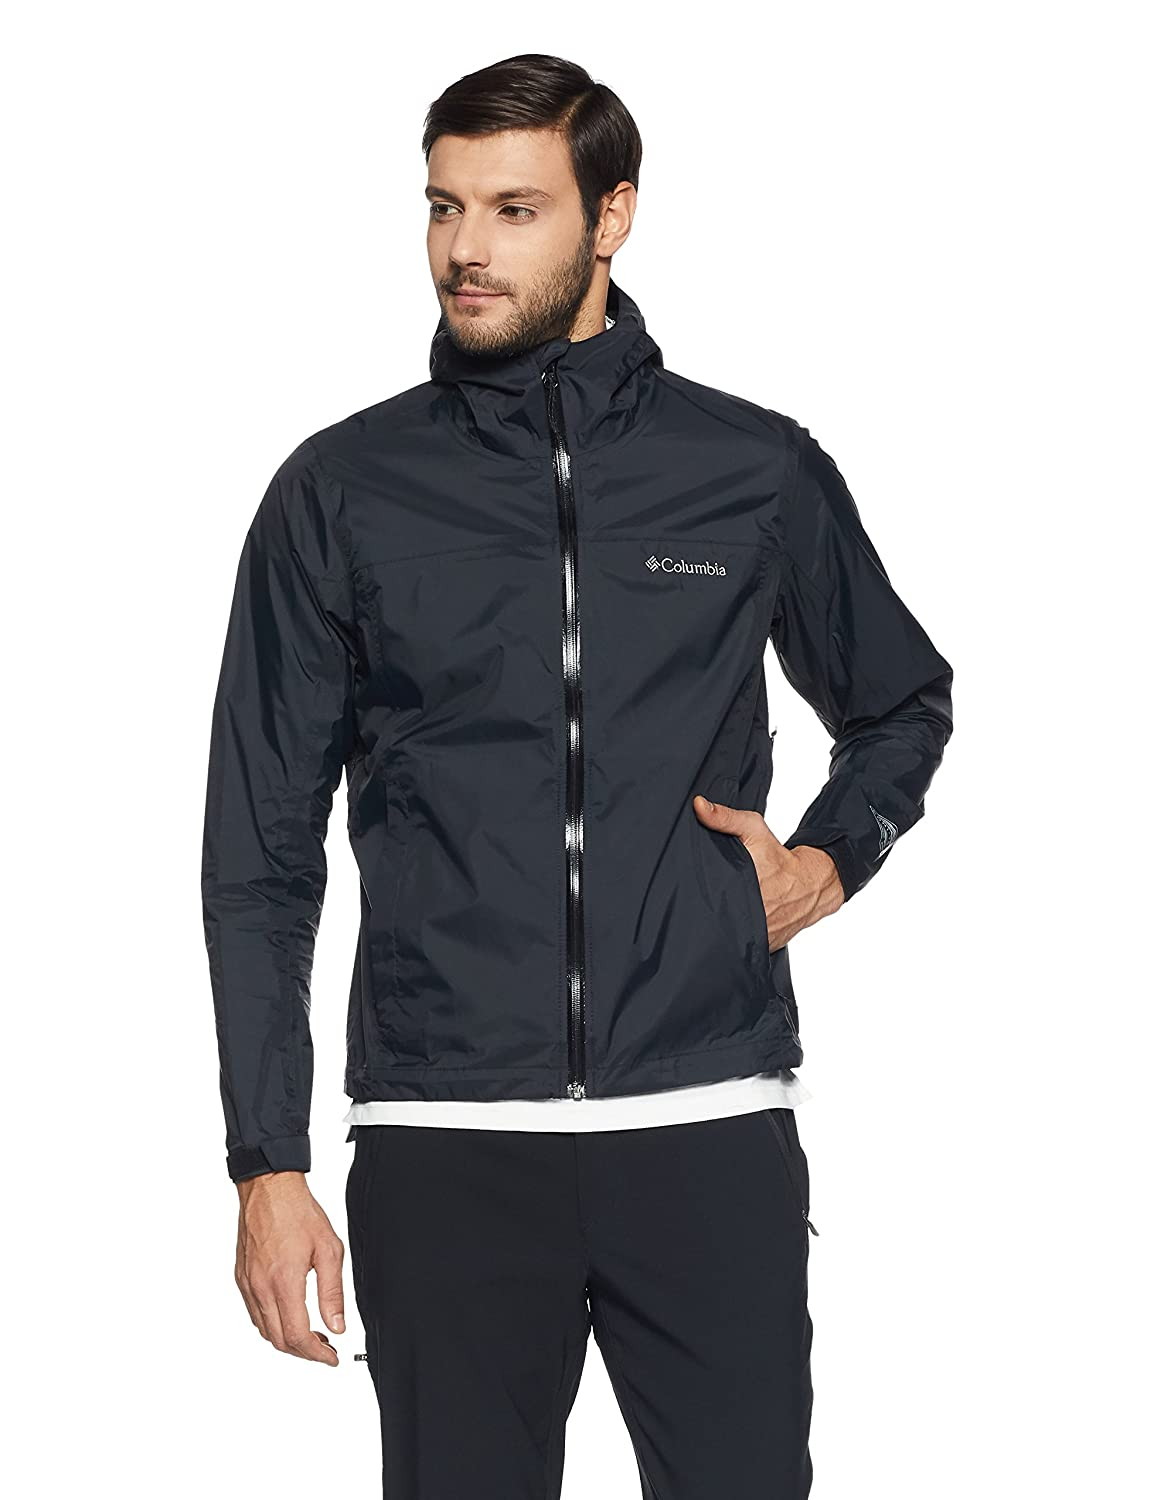 Columbia Sportswear Men's EvaPOURation Jacket Columbia (Sporting Goods) RS2023-010